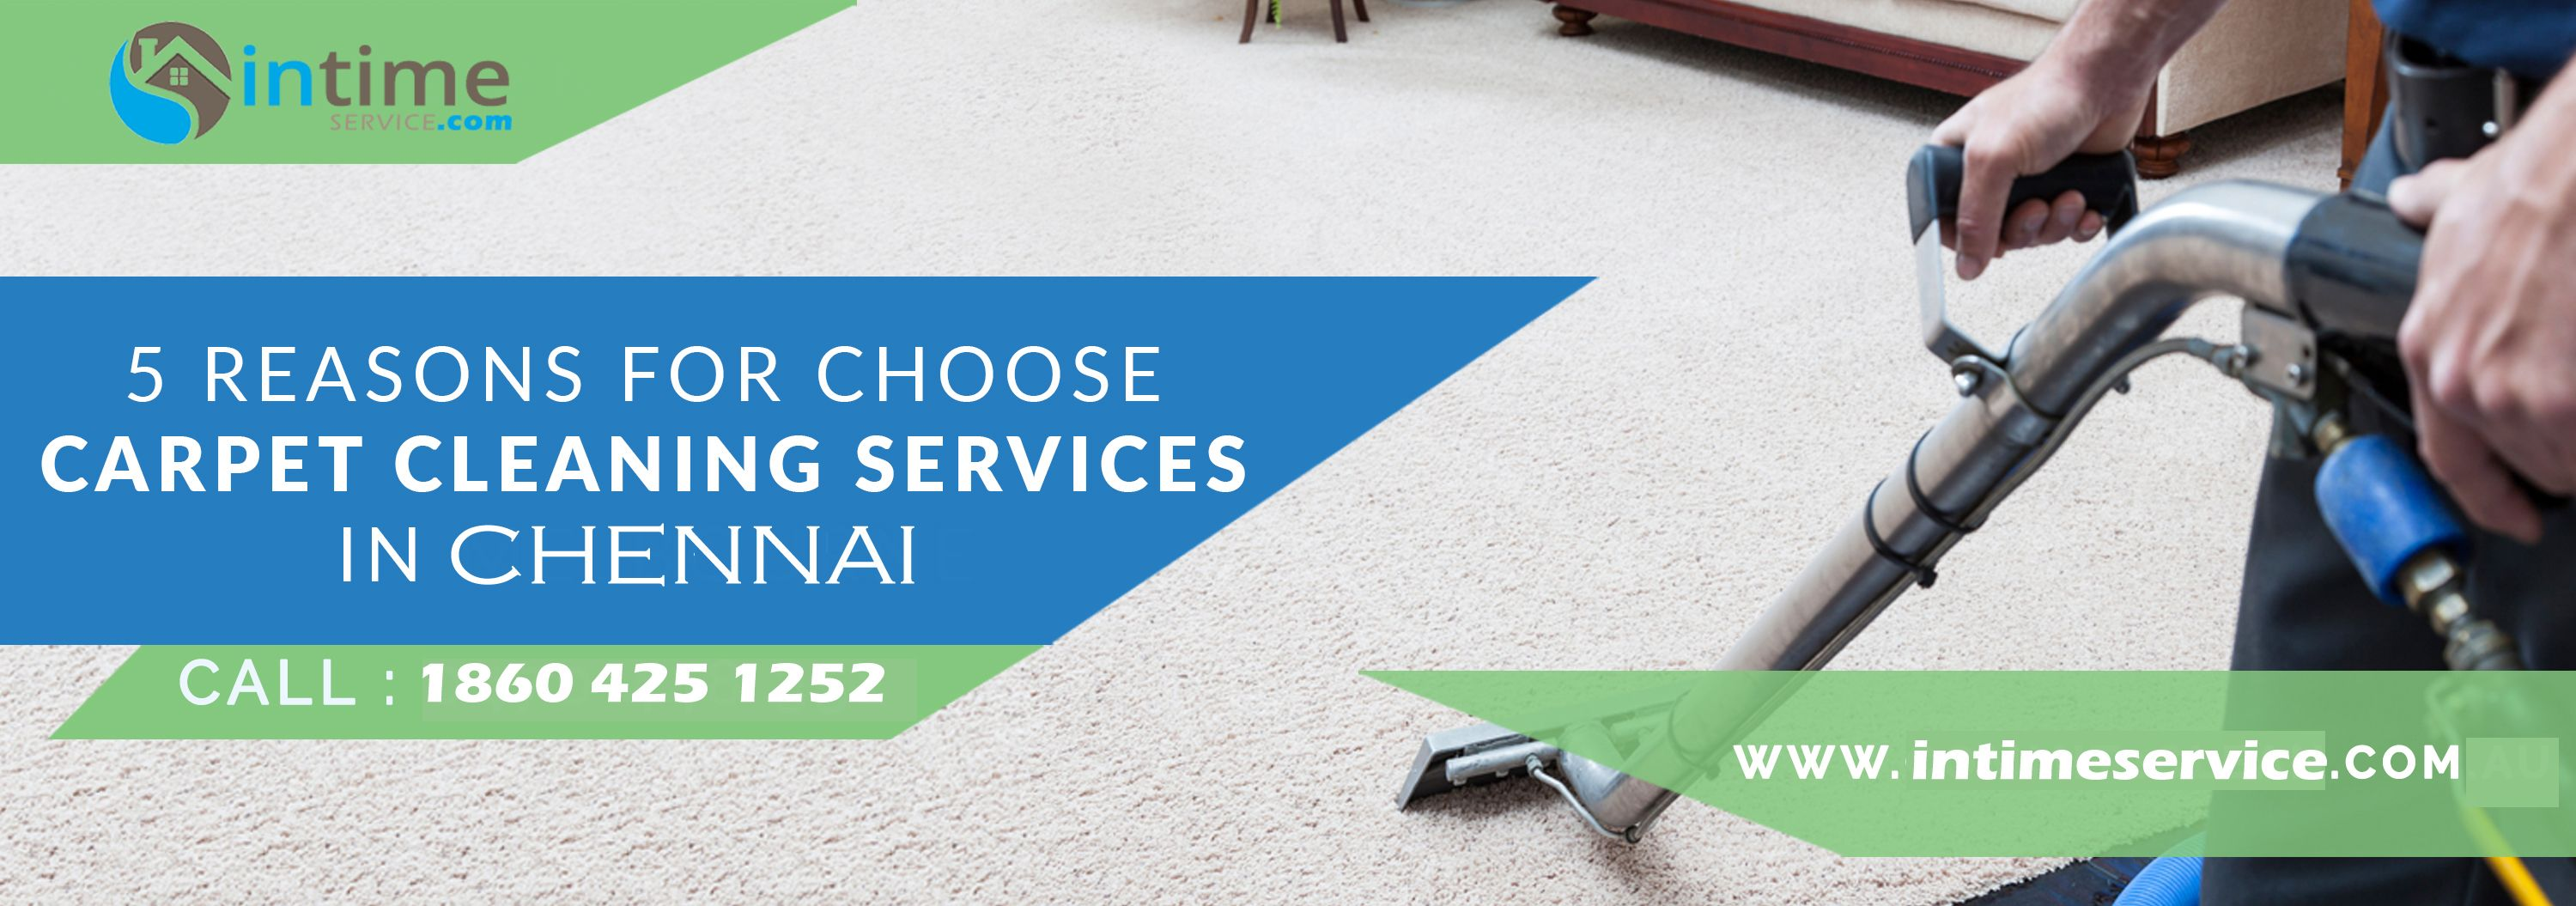 Sofa Cleaning Services In Chennai Buy Cheap Set Uk Best Local Carpet Service Home Plan